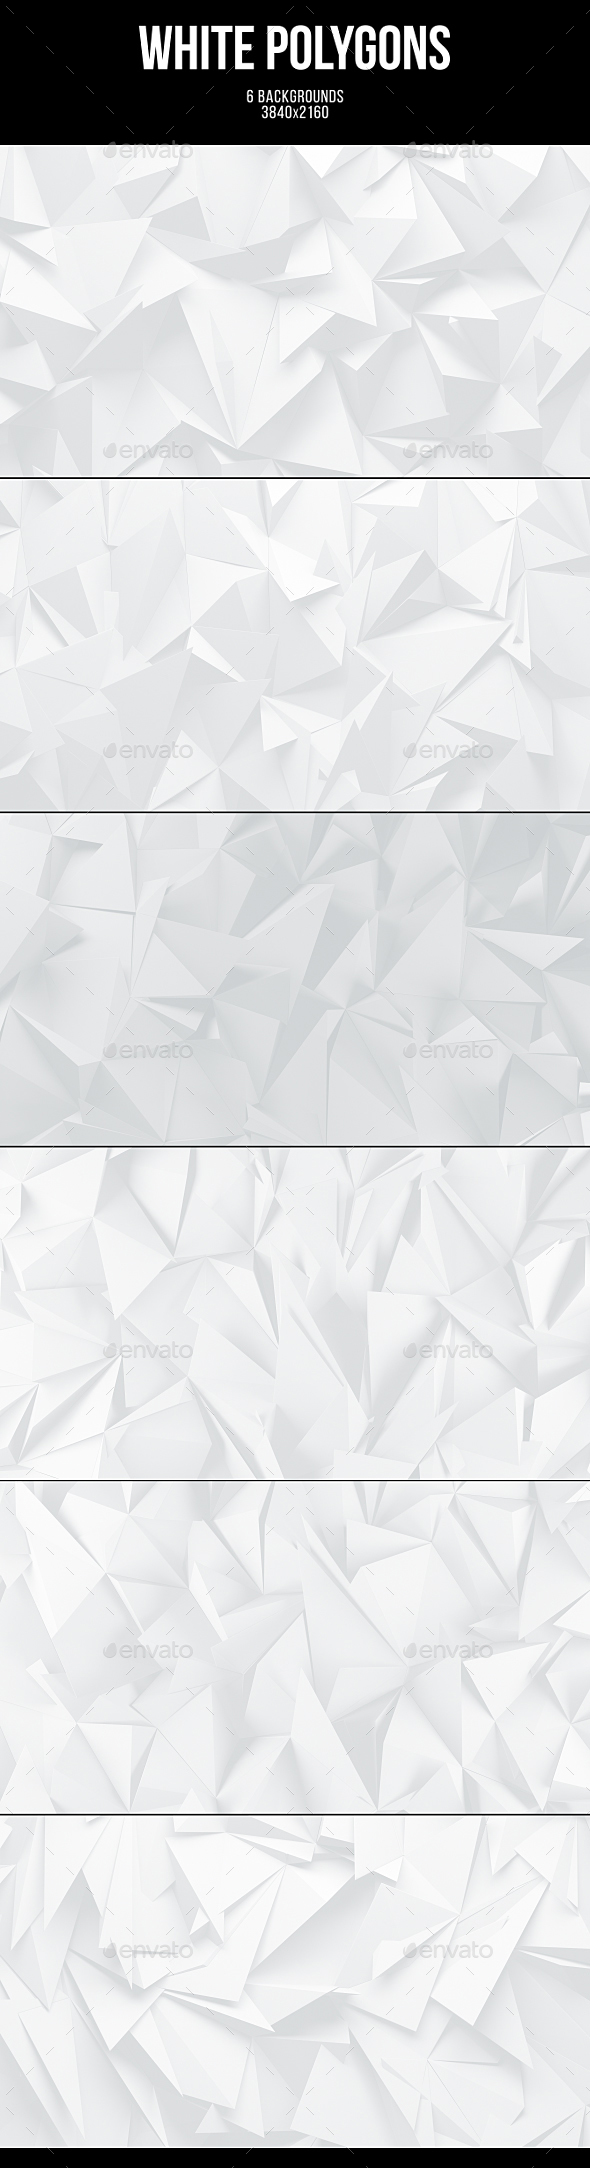 White Polygons Backgrounds - Abstract Backgrounds